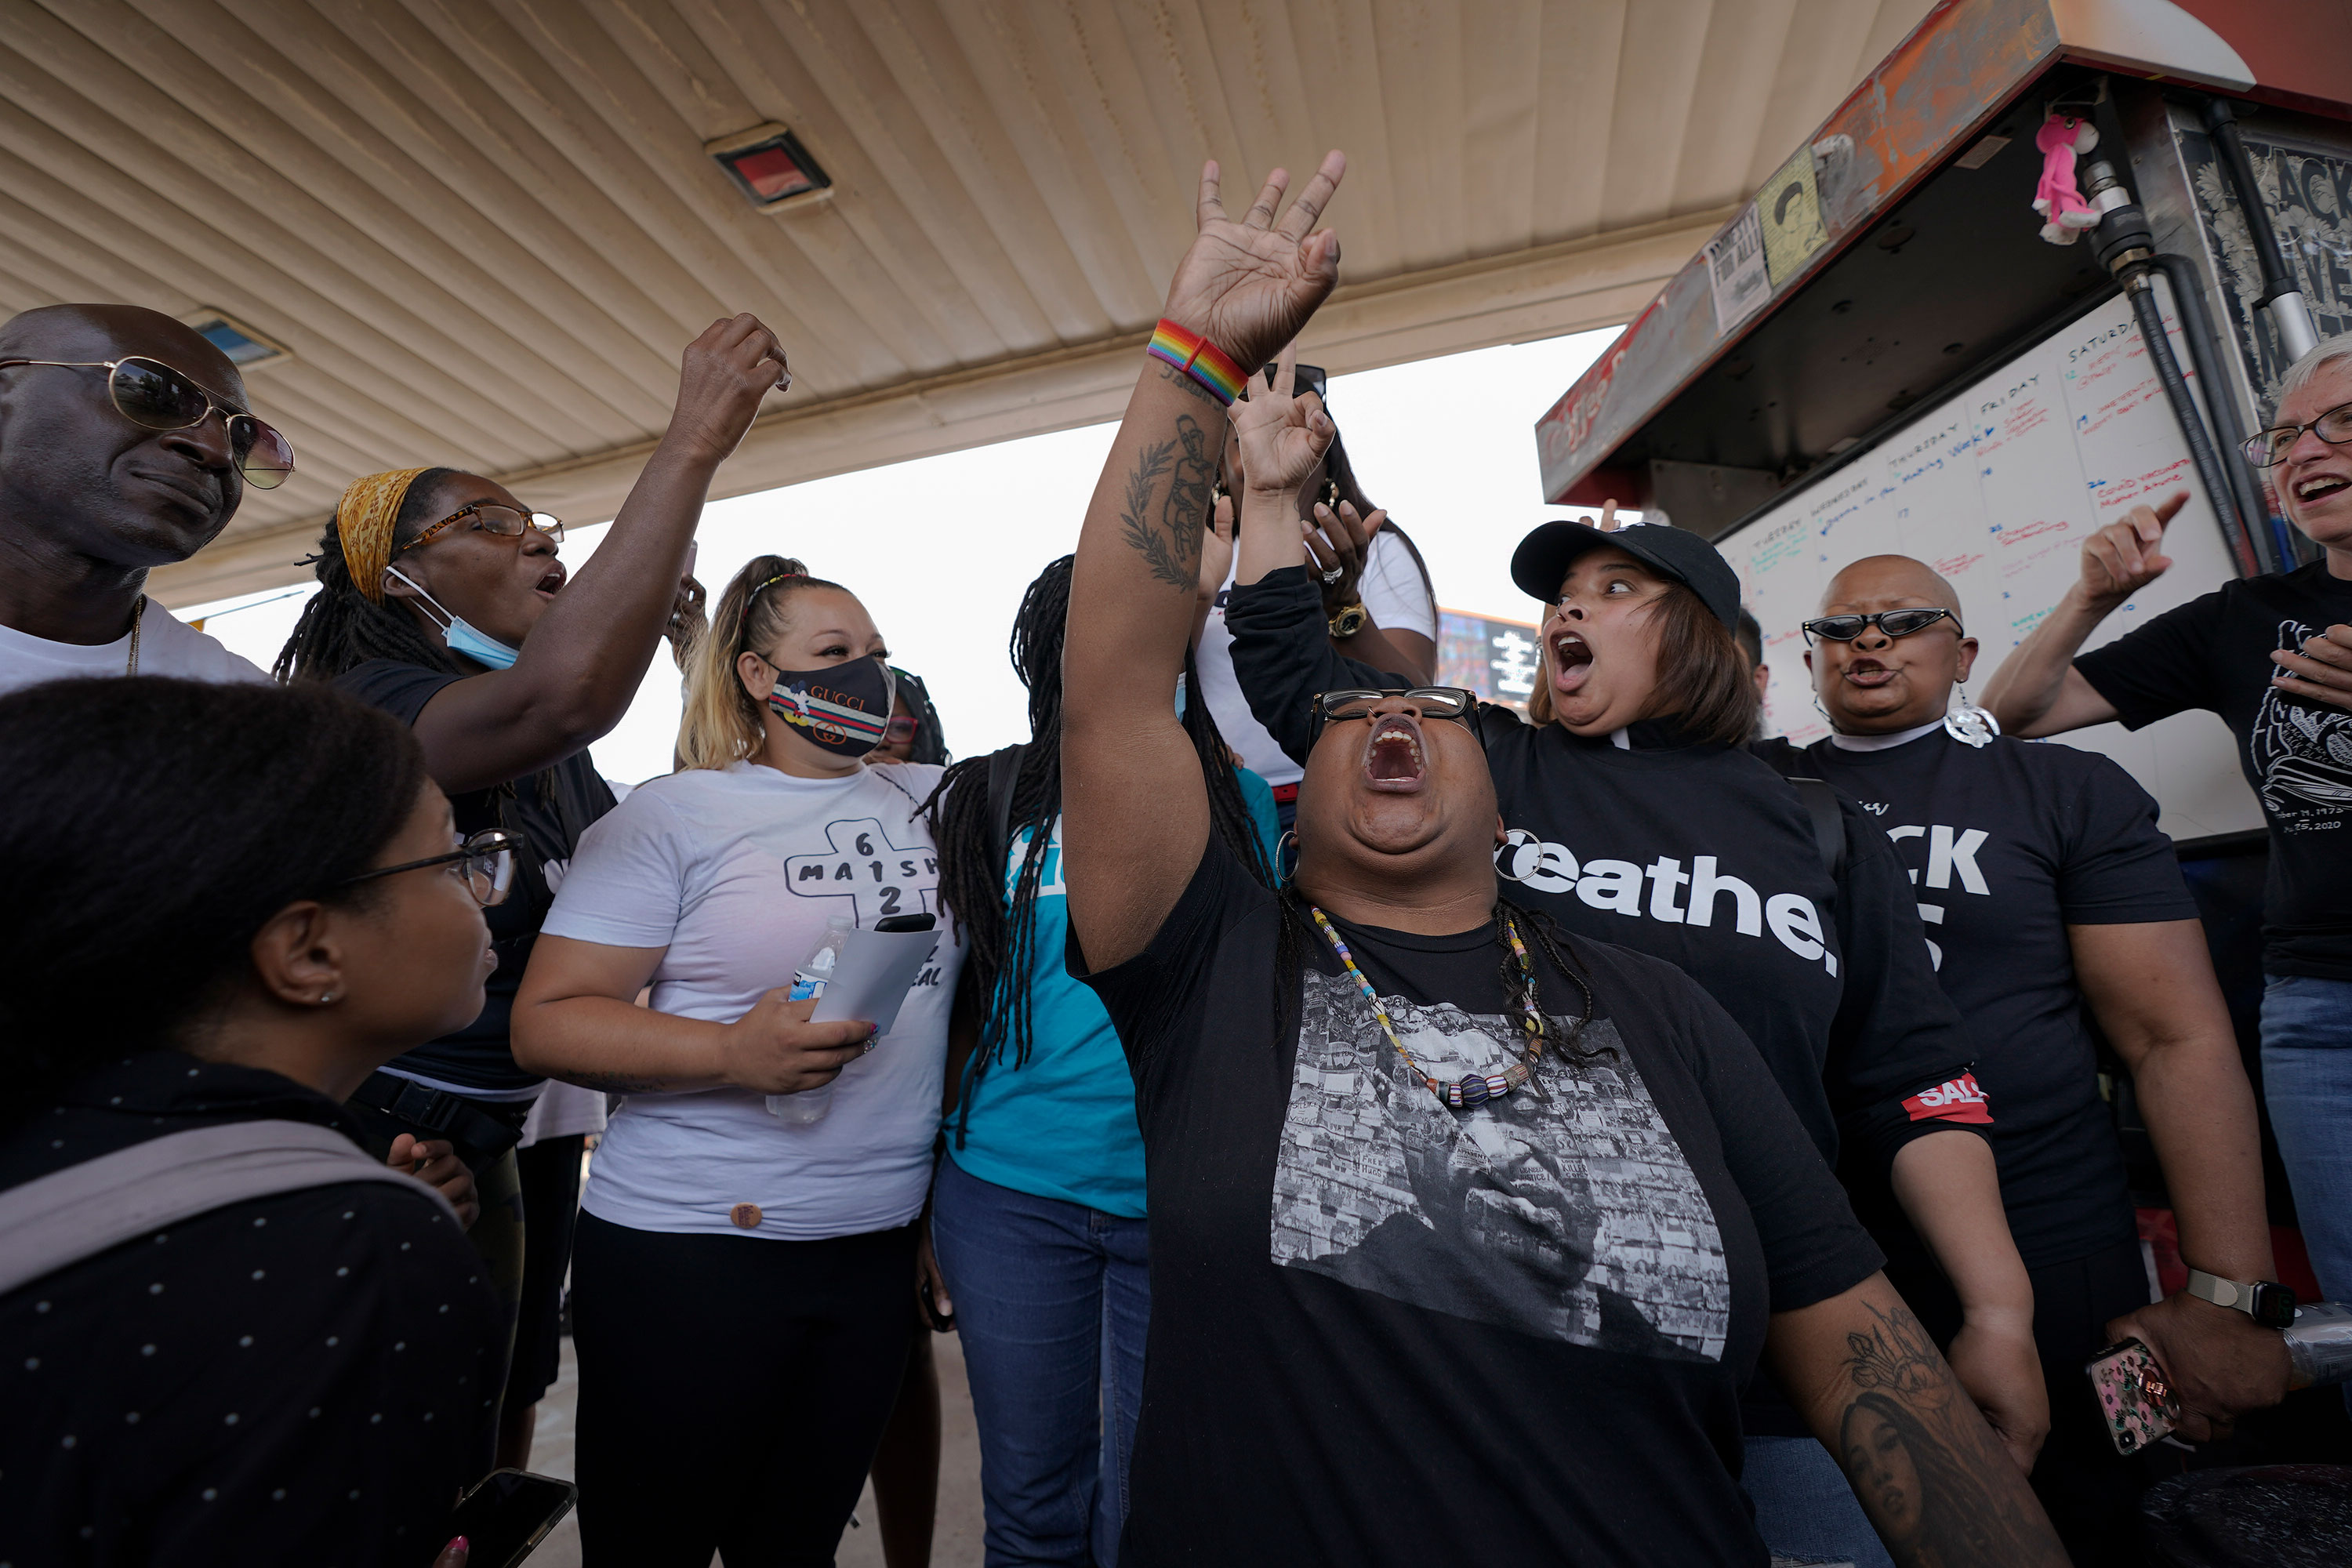 Jennifer Starr Dodd, center, holds up three fingers to symbolize the three other police officers still to be tried, as supporters react to the sentencing of former Minneapolis police Officer Derek Chauvin for the murder of George Floyd on Friday, June 25, at George Floyd Square in Minneapolis.